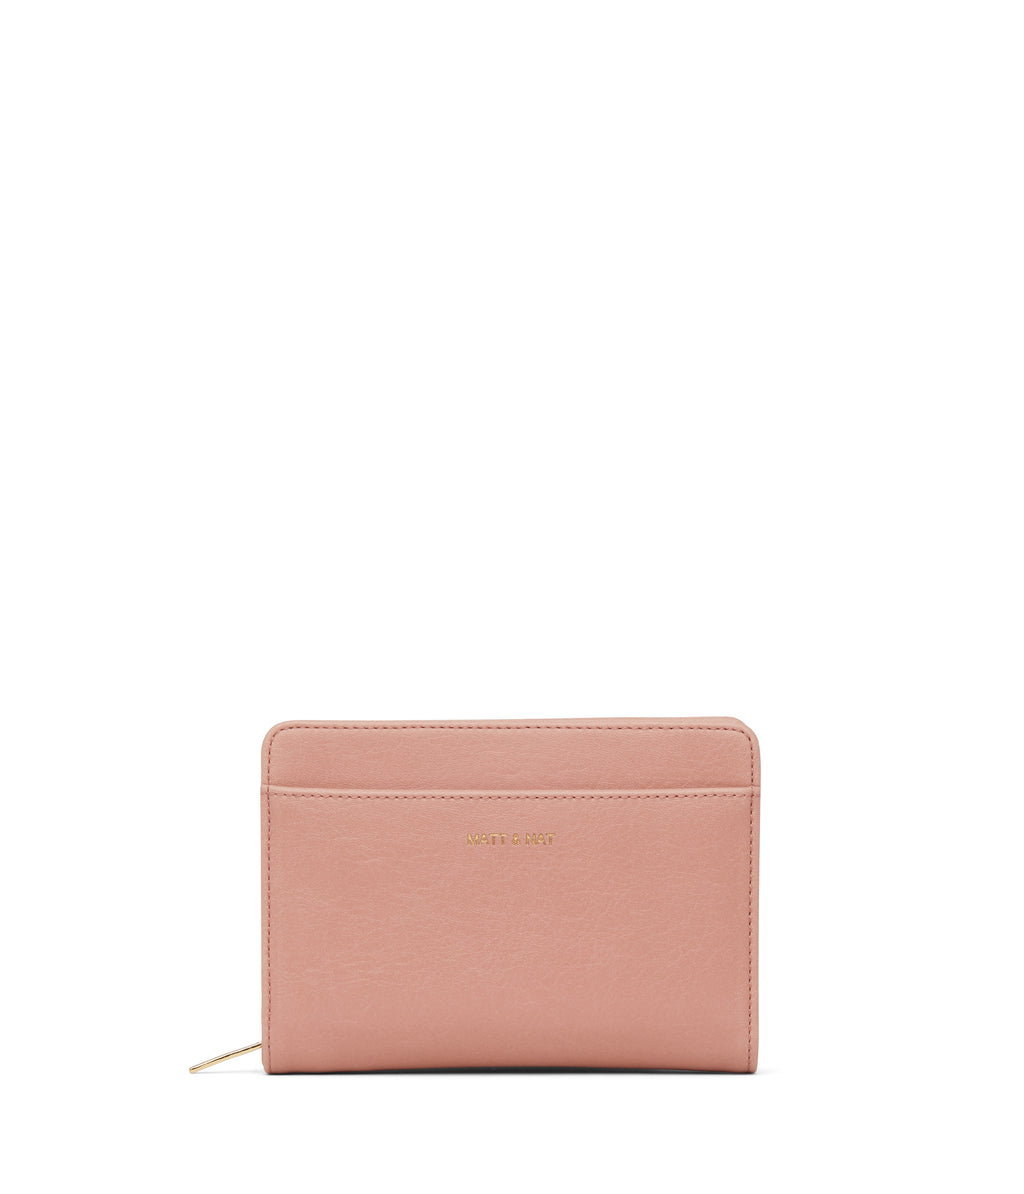 Webber Small Wallet - Ceramic